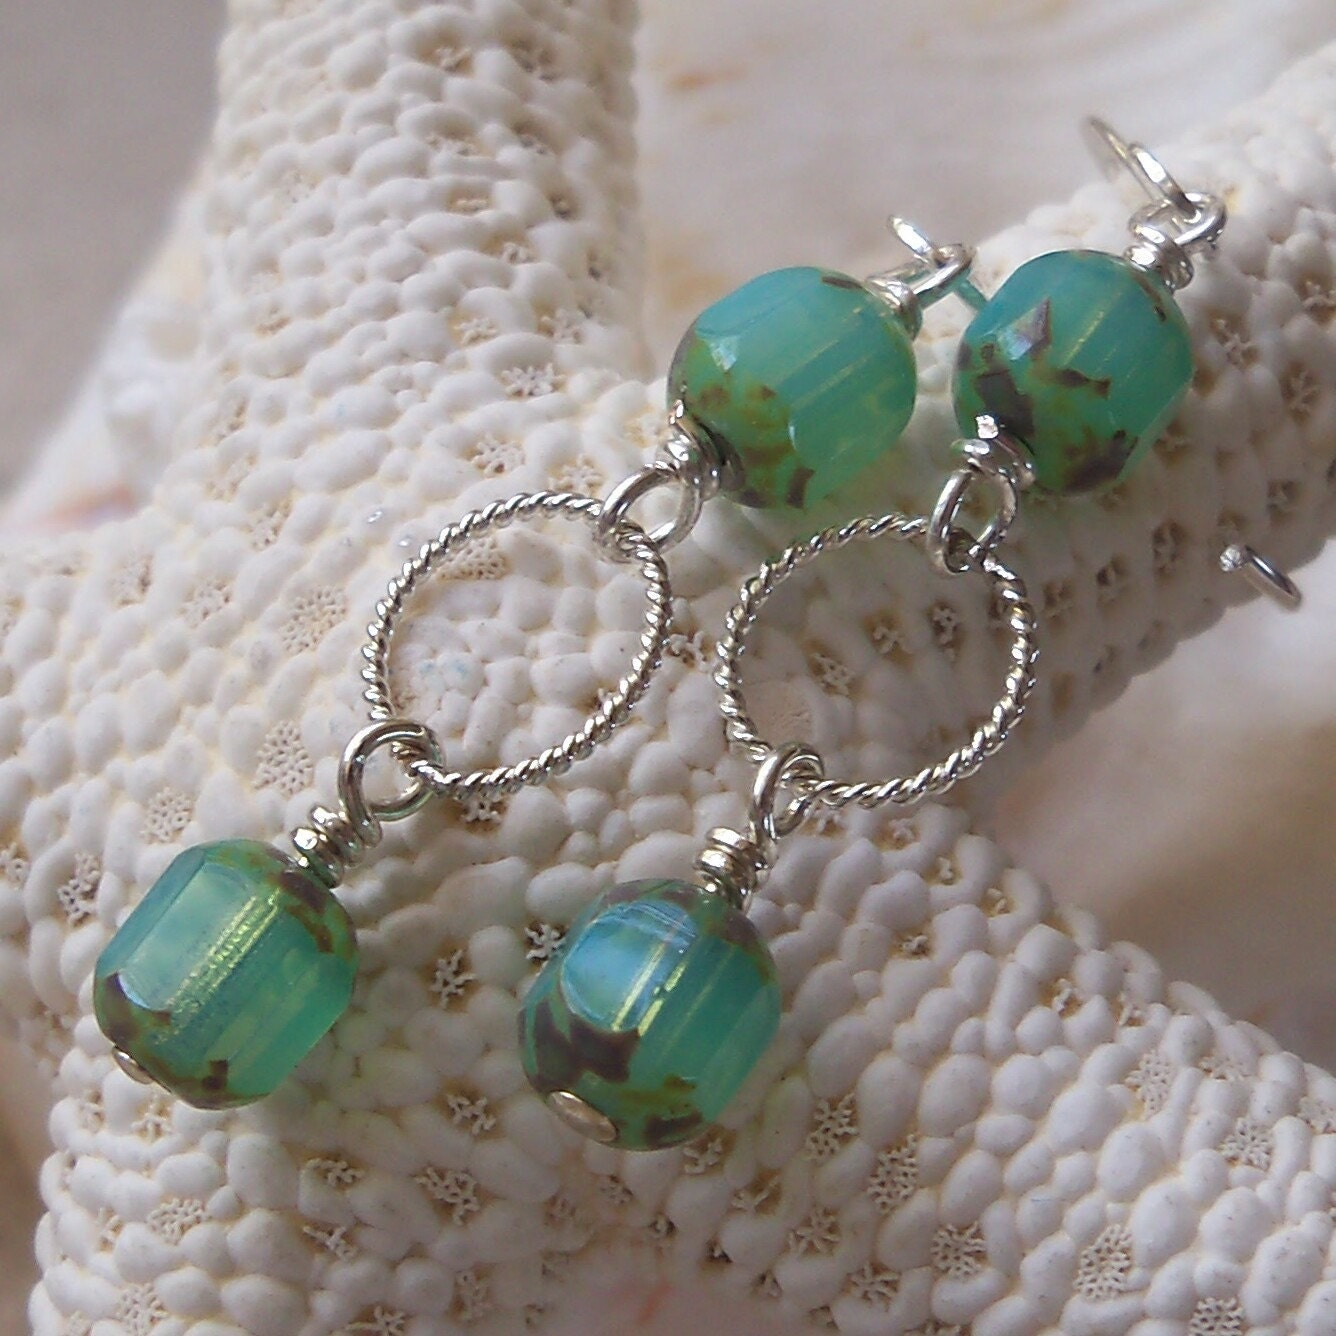 Seafoam Cathedral Beads and Sterling Silver Earrings - mompotter